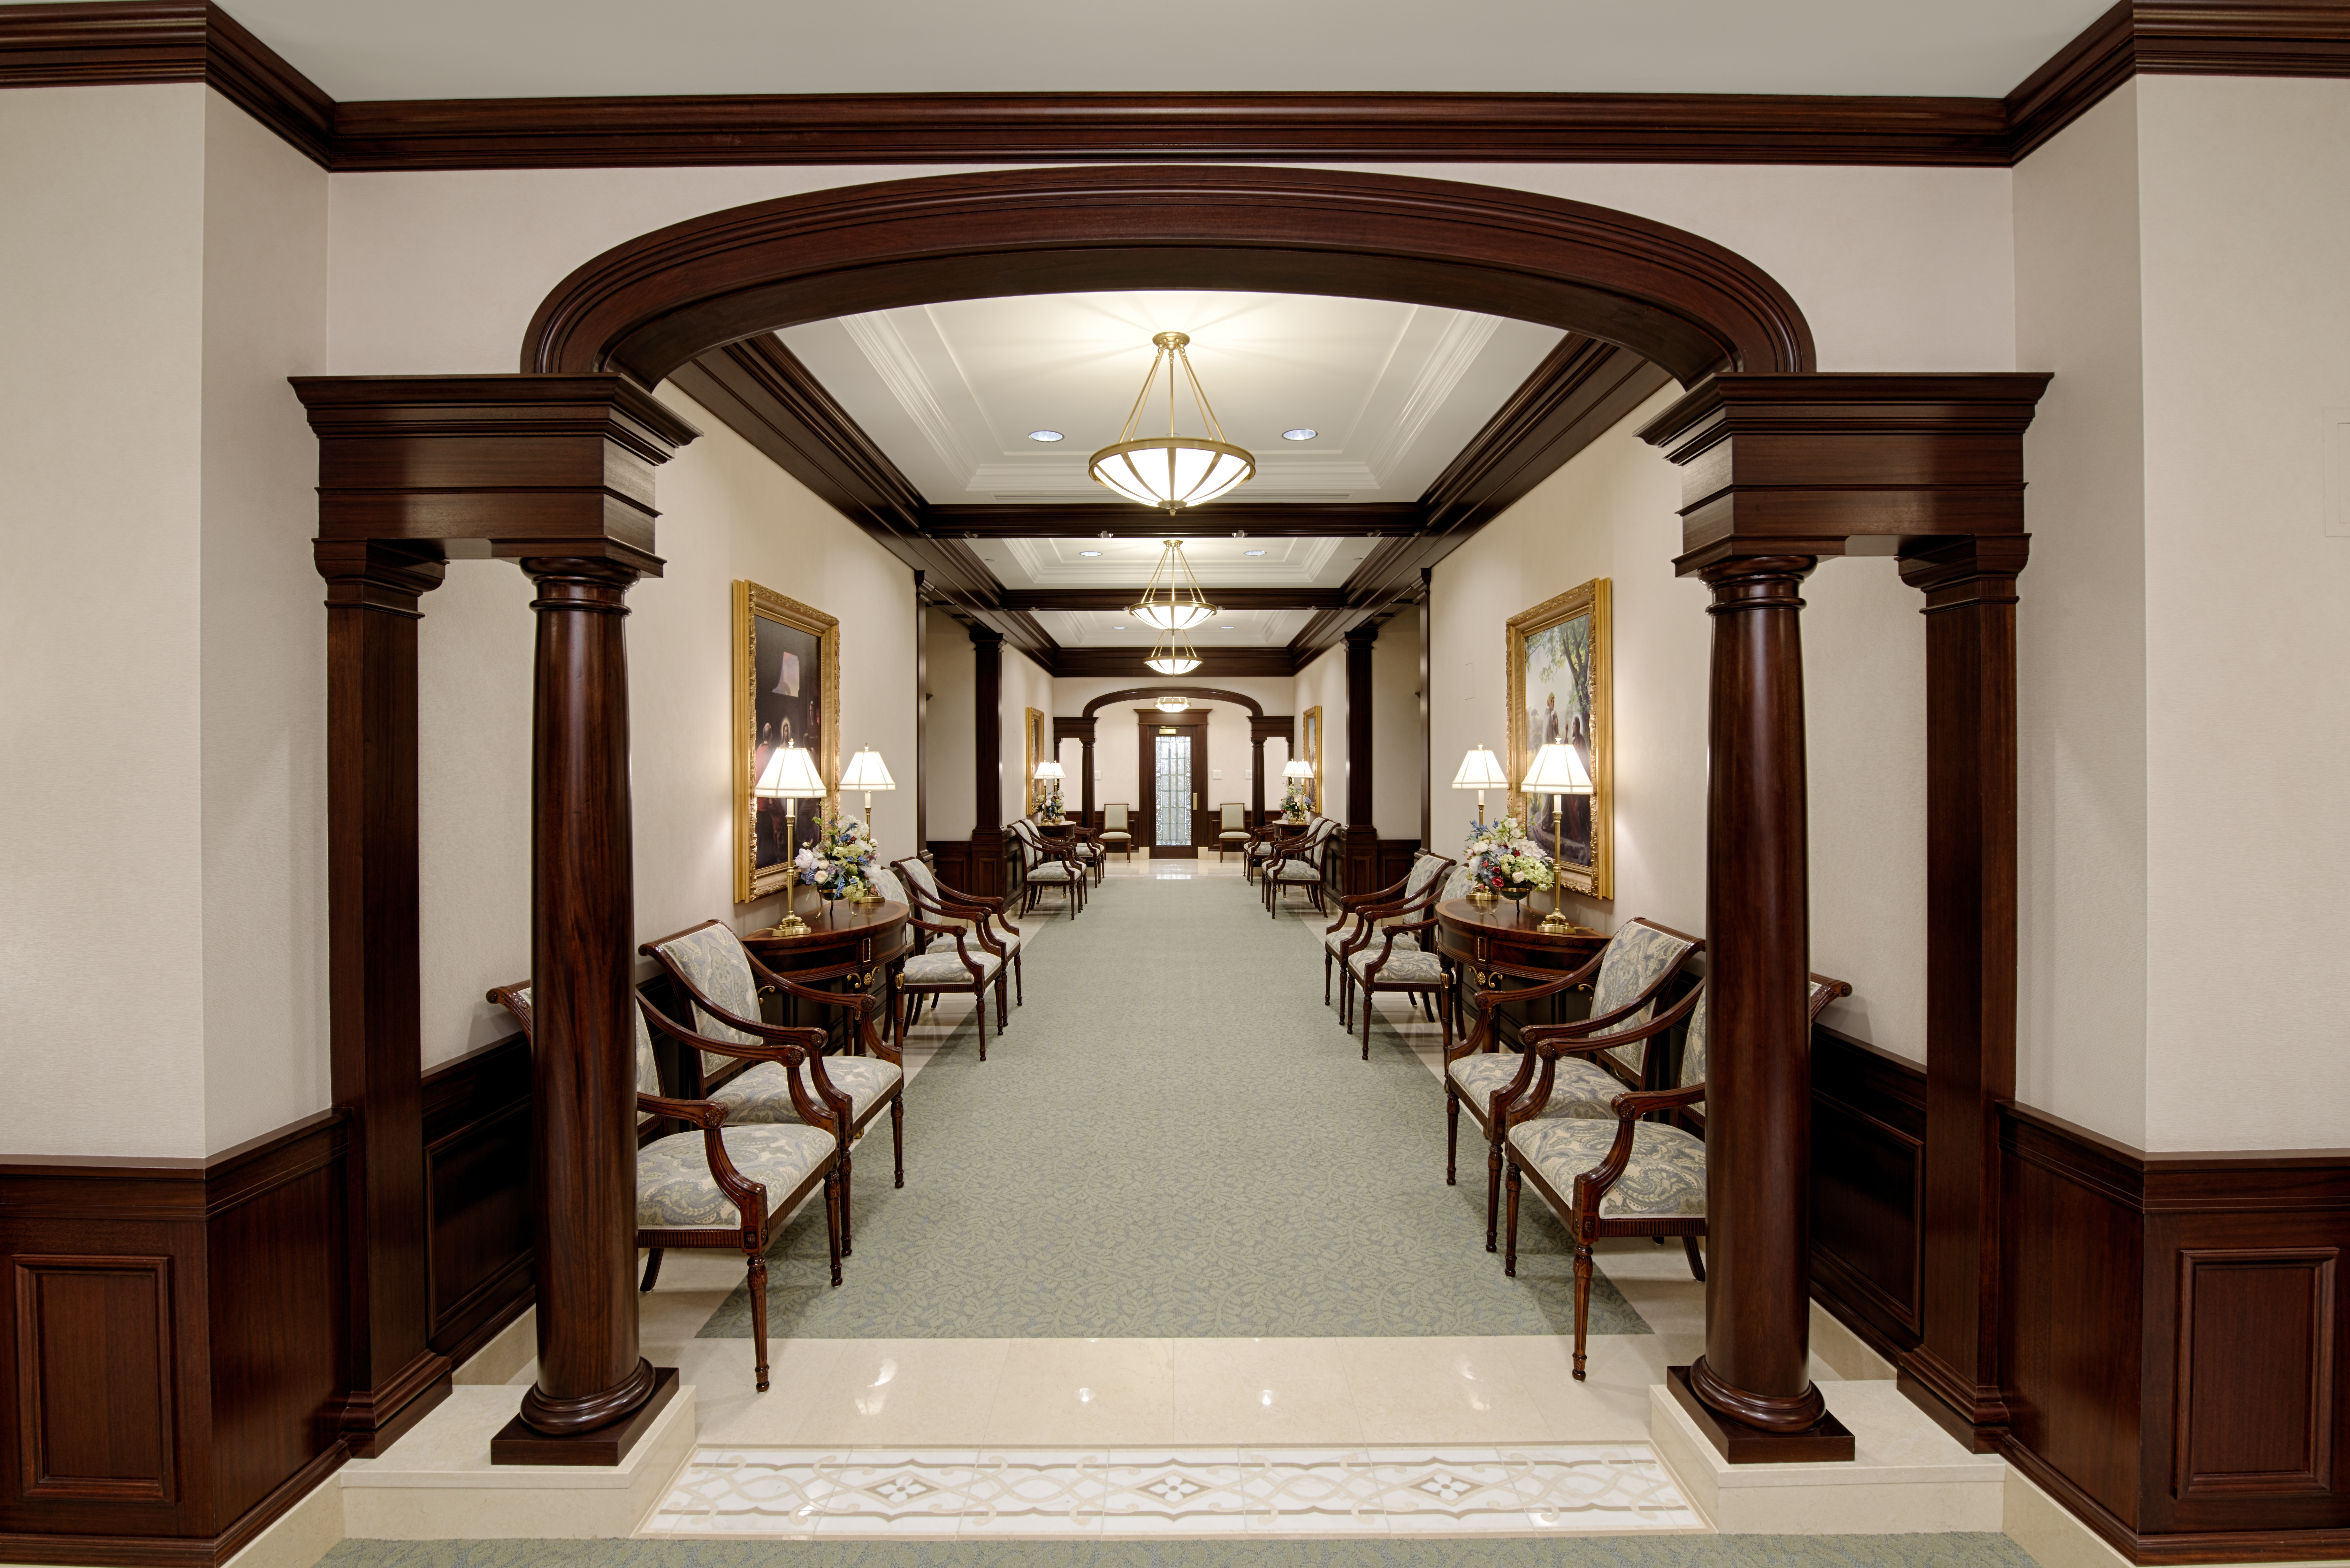 Mormon temple grand hallways an inside look at lds temples for Hallways images